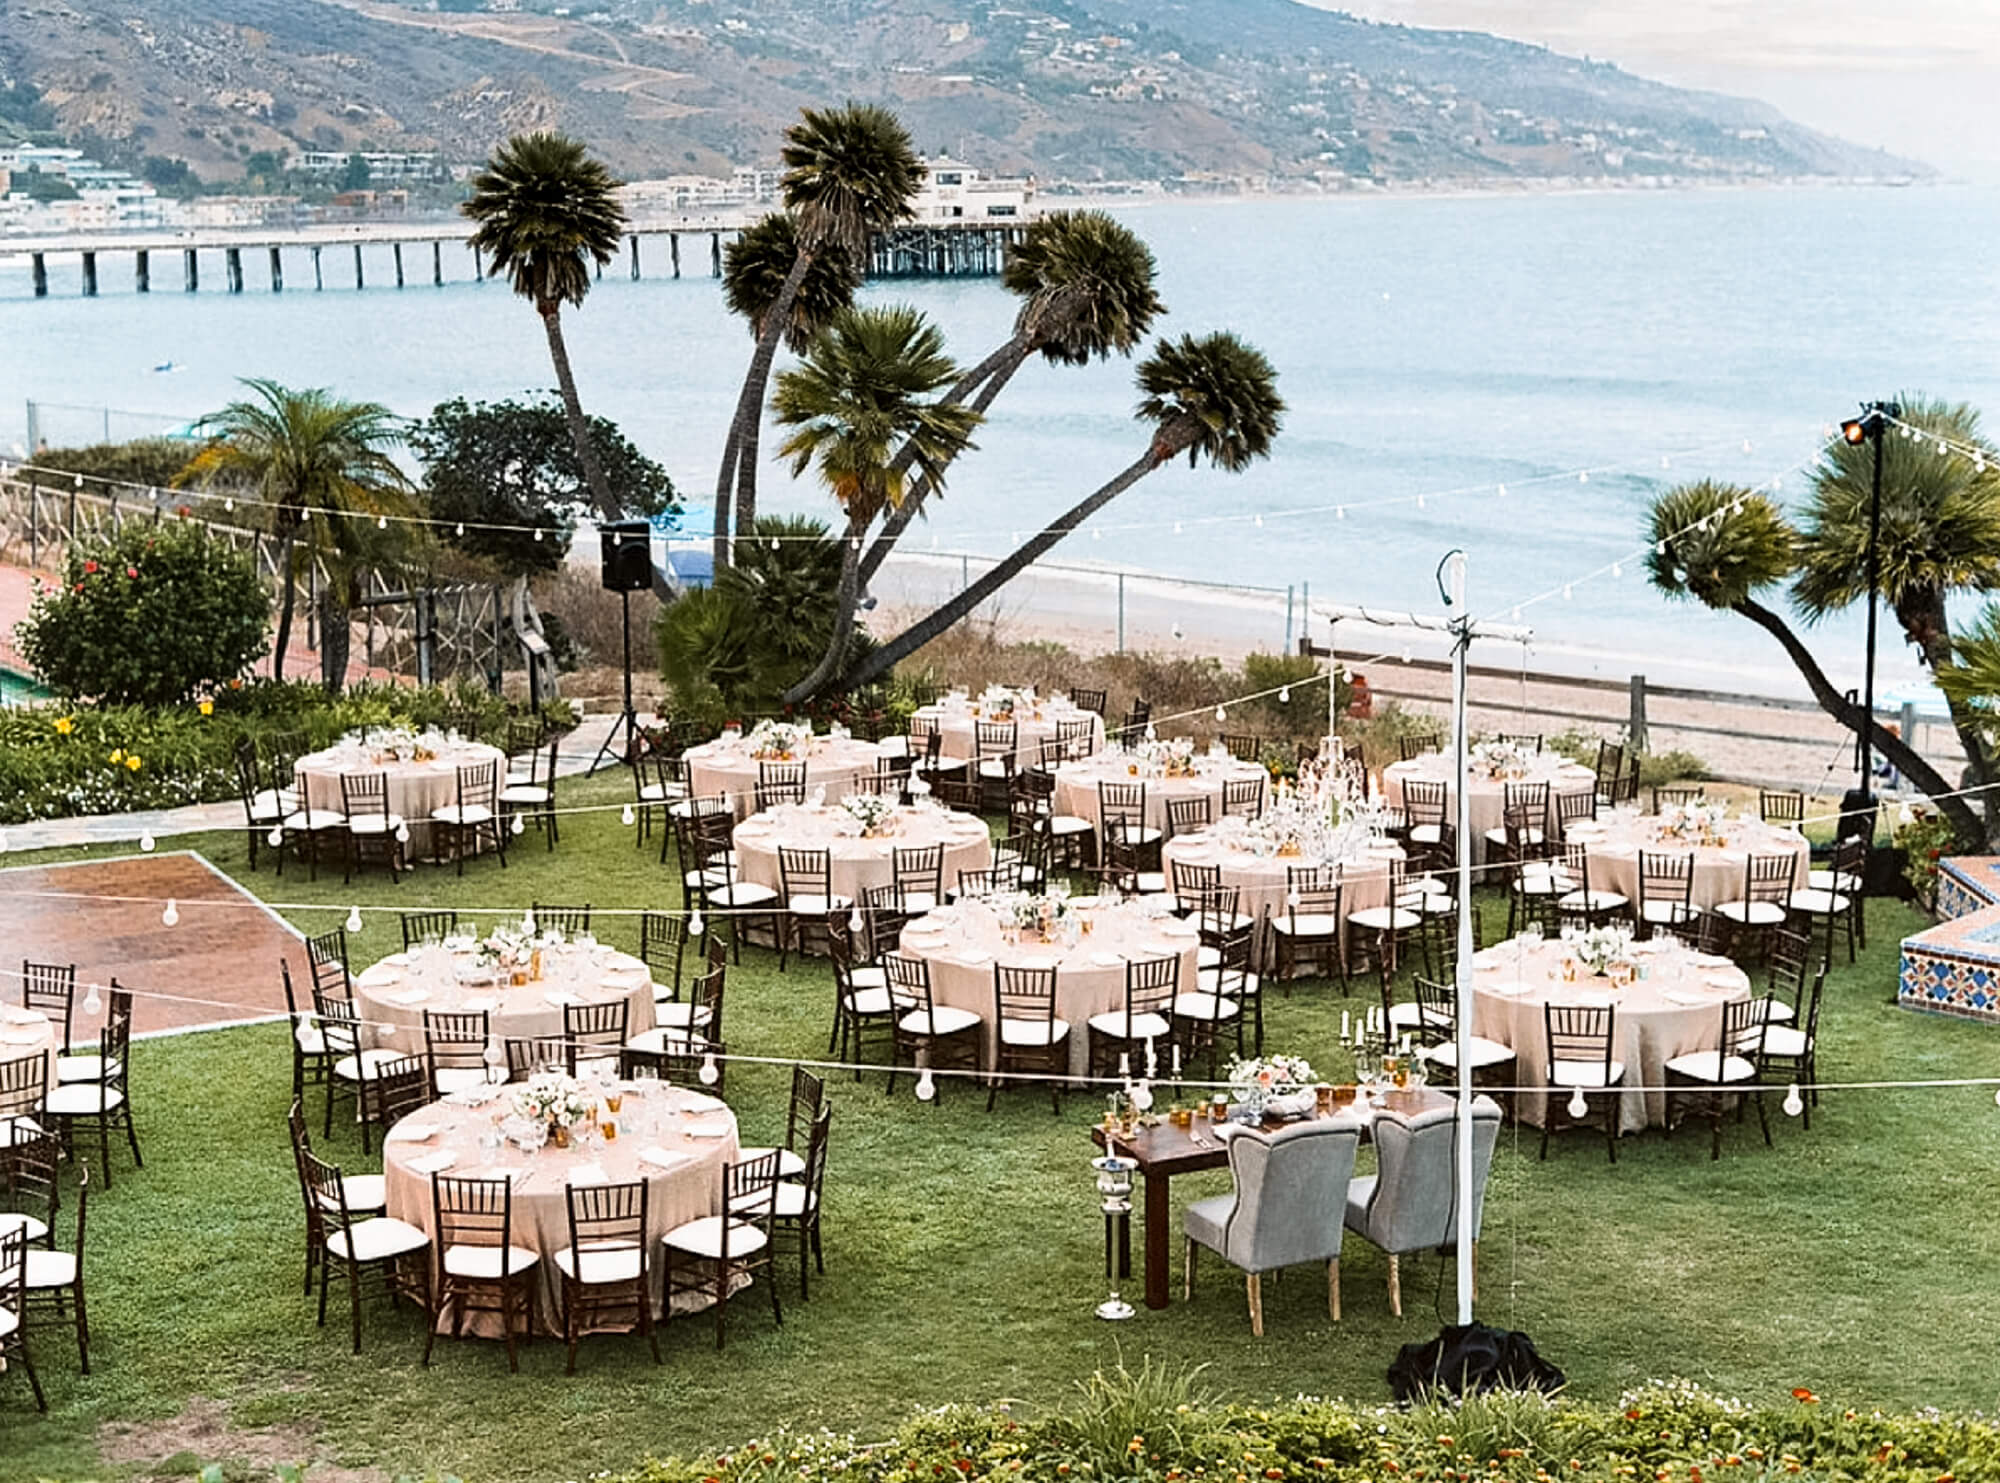 California Beach wedding venues: Adamson House Malibu